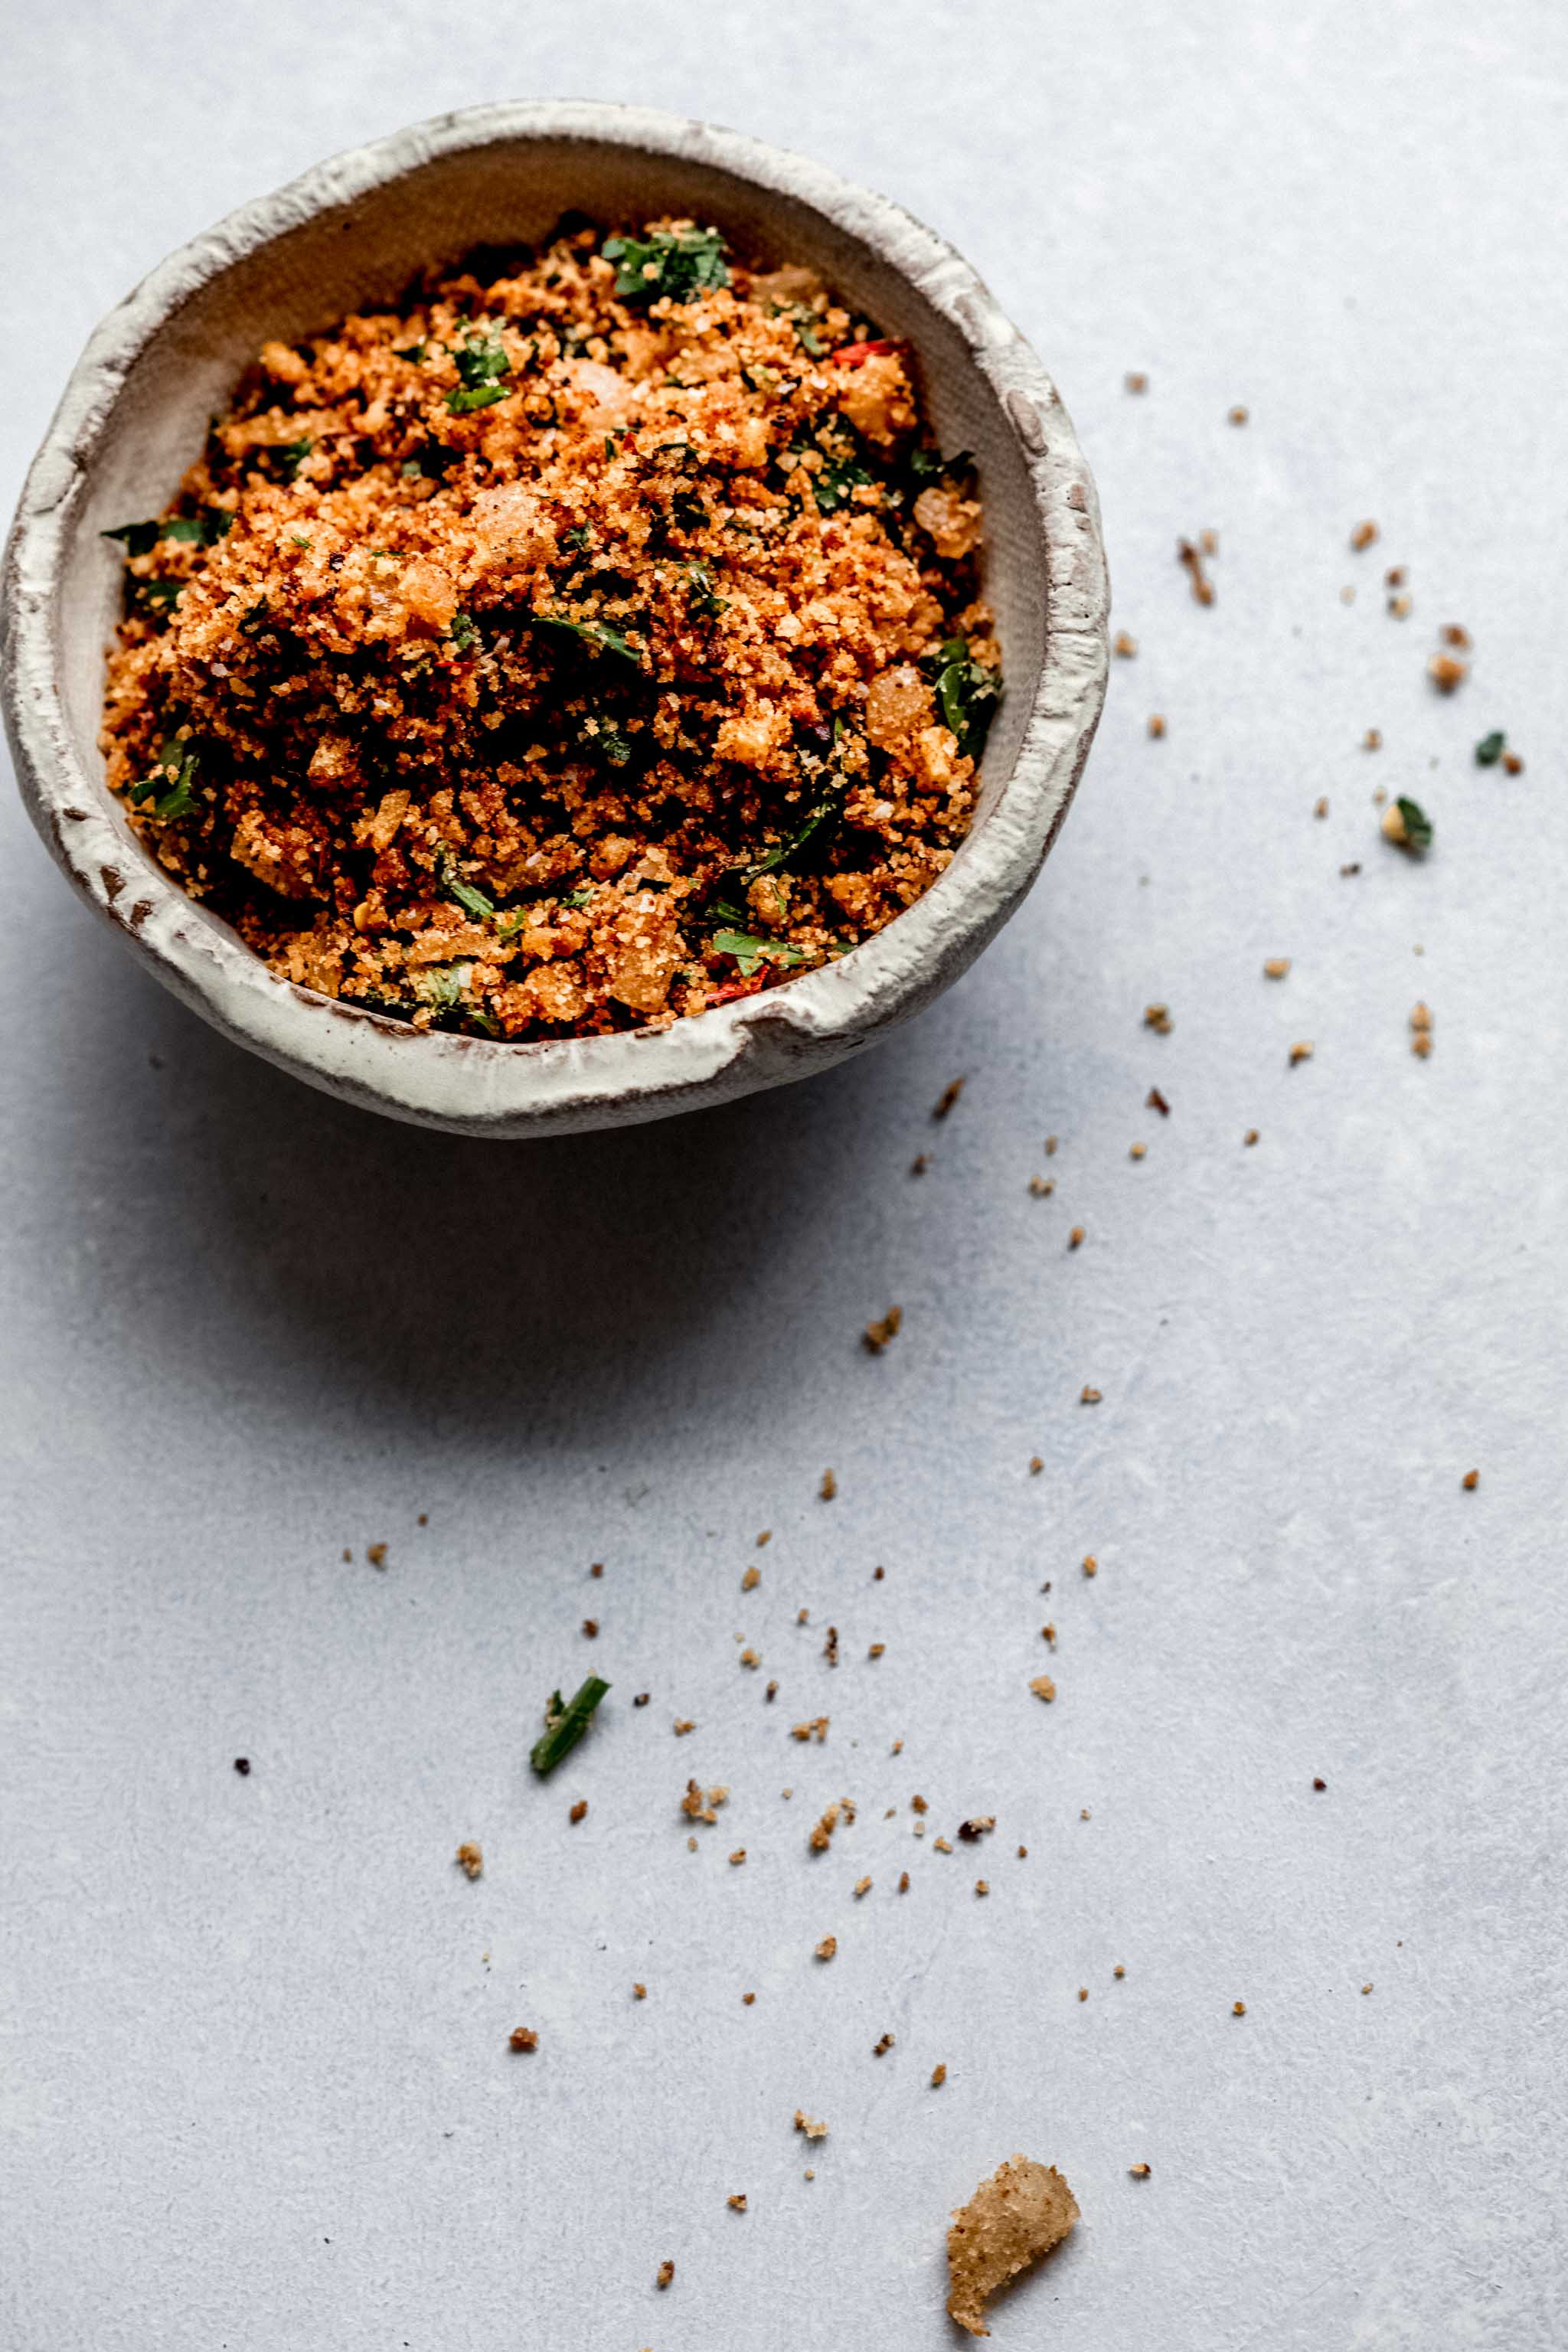 Bowl of toasted breadcrumbs.